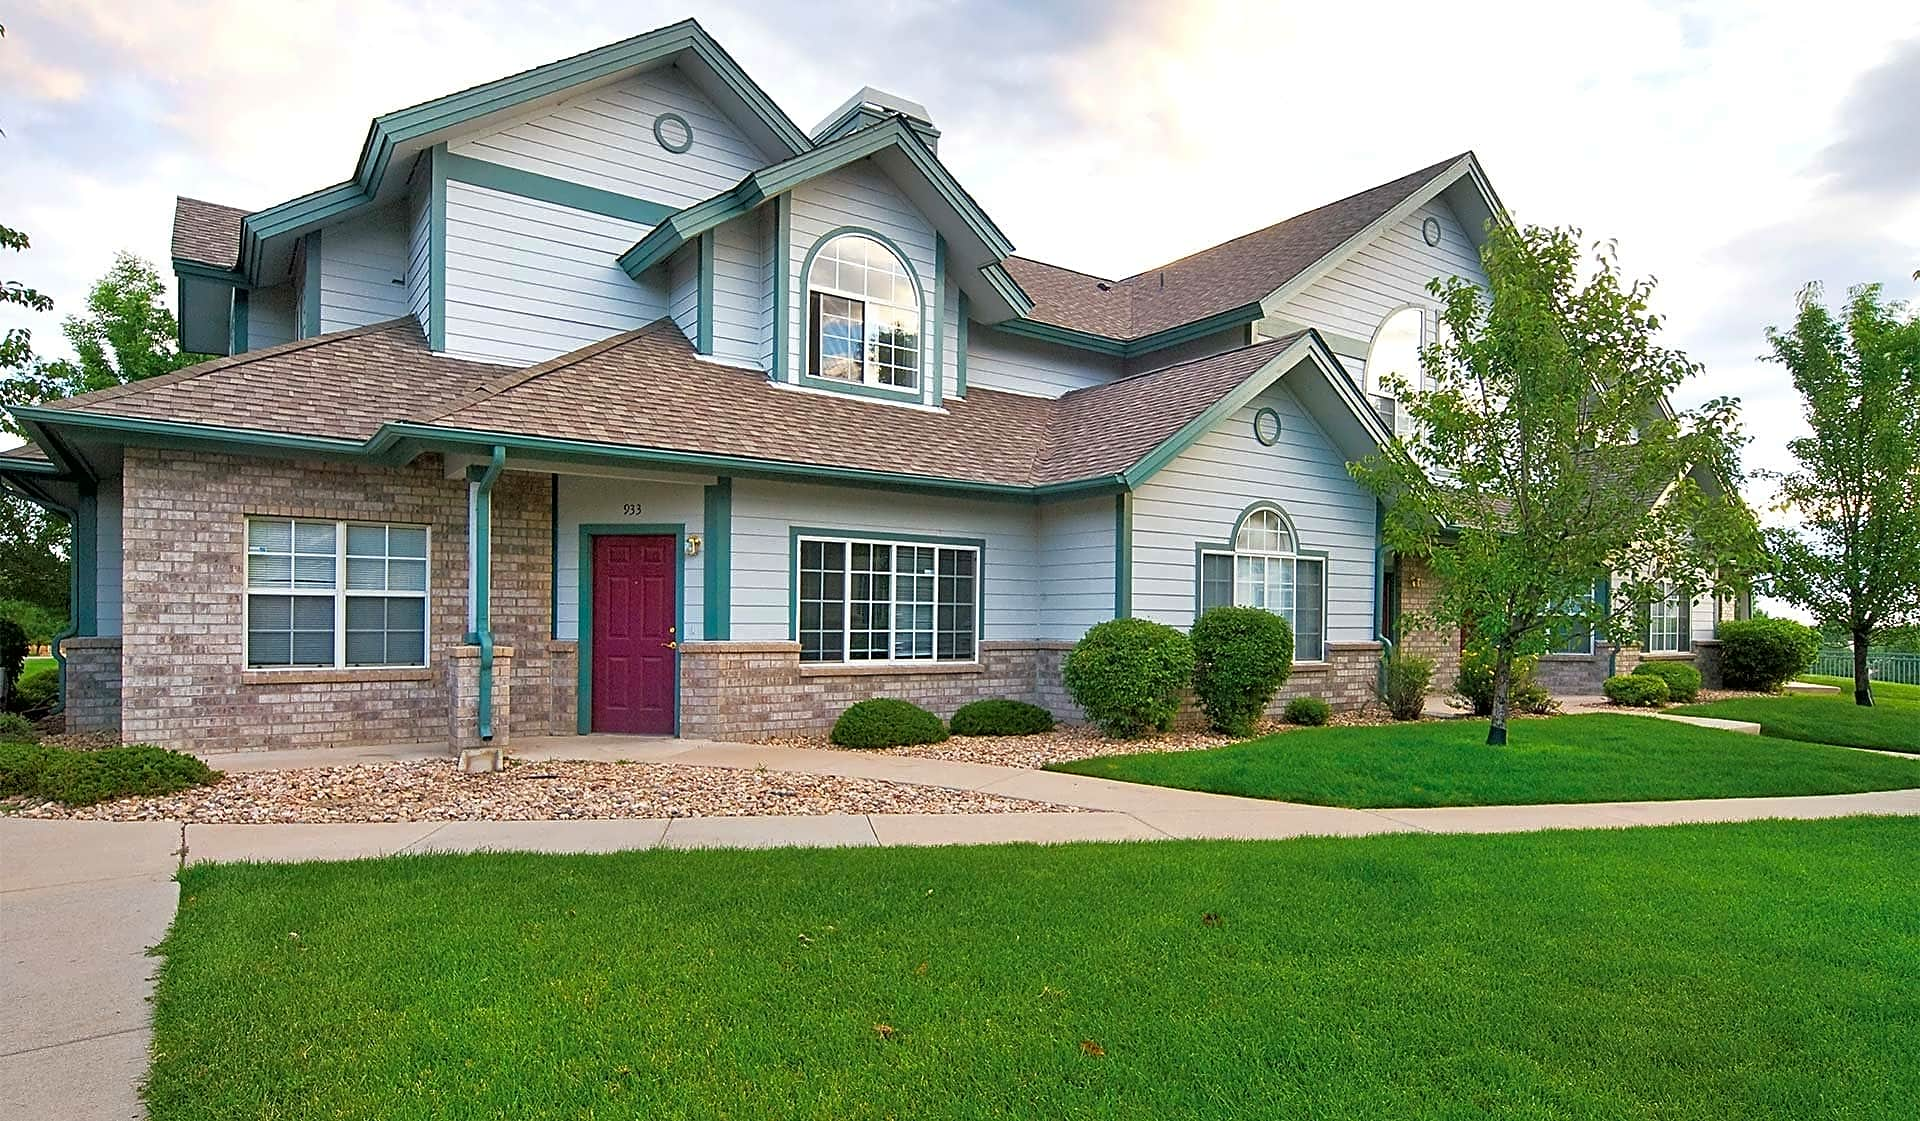 Apartment homes in a quiet residential neighborhood of Centennial, CO